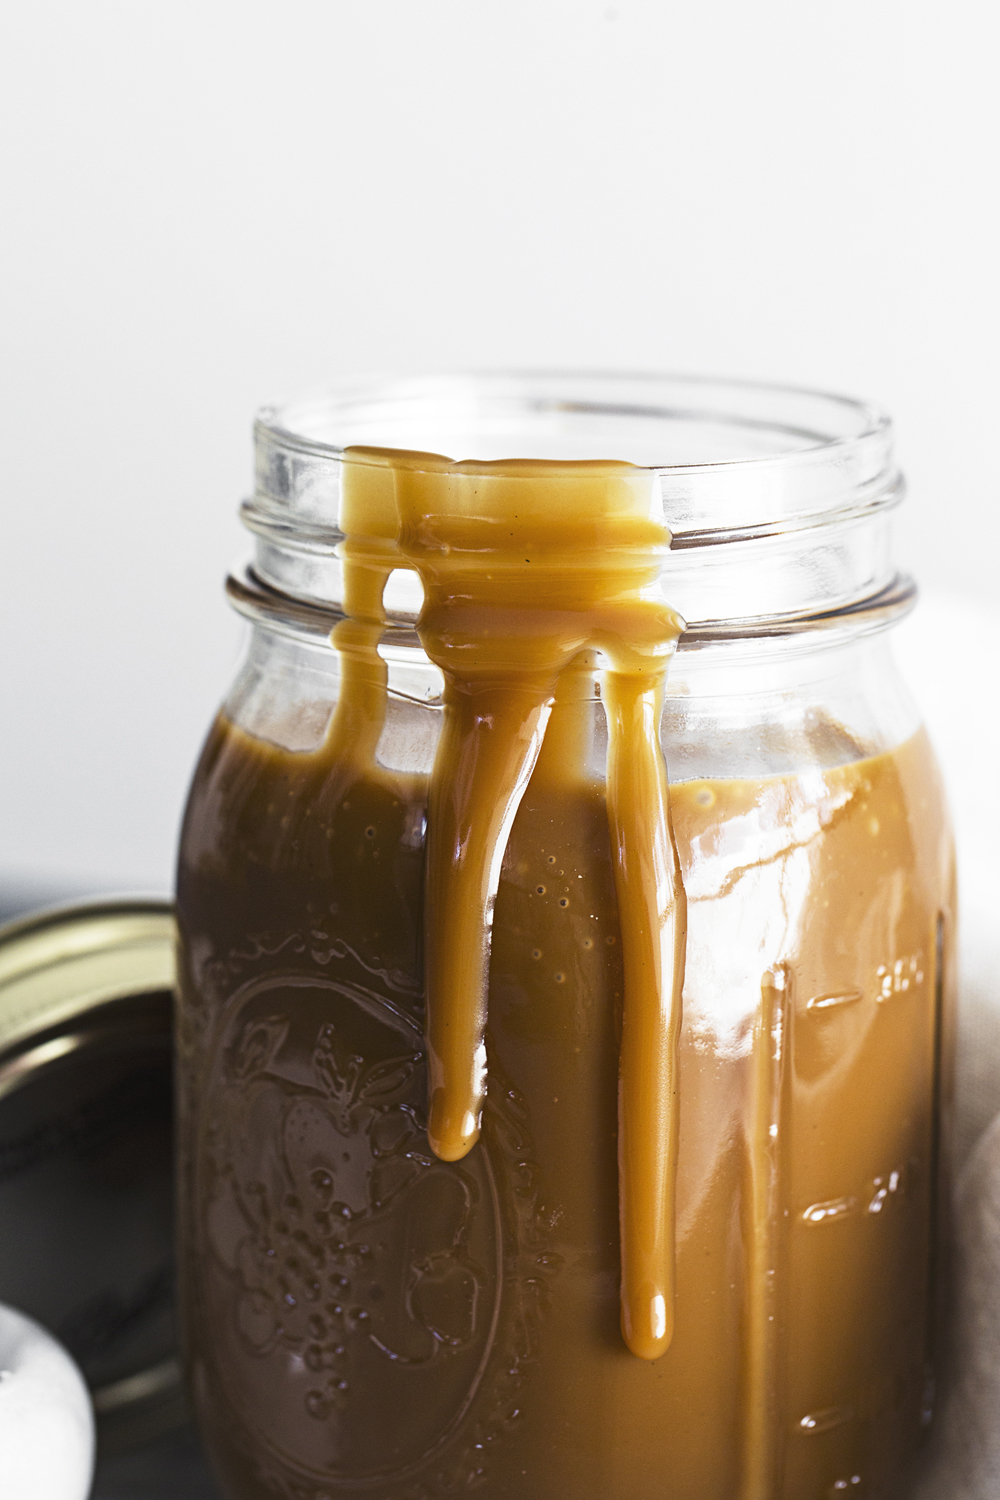 This delicious Vegan Salted Caramel requires only 4 ingredients and 35 minutes of your time!